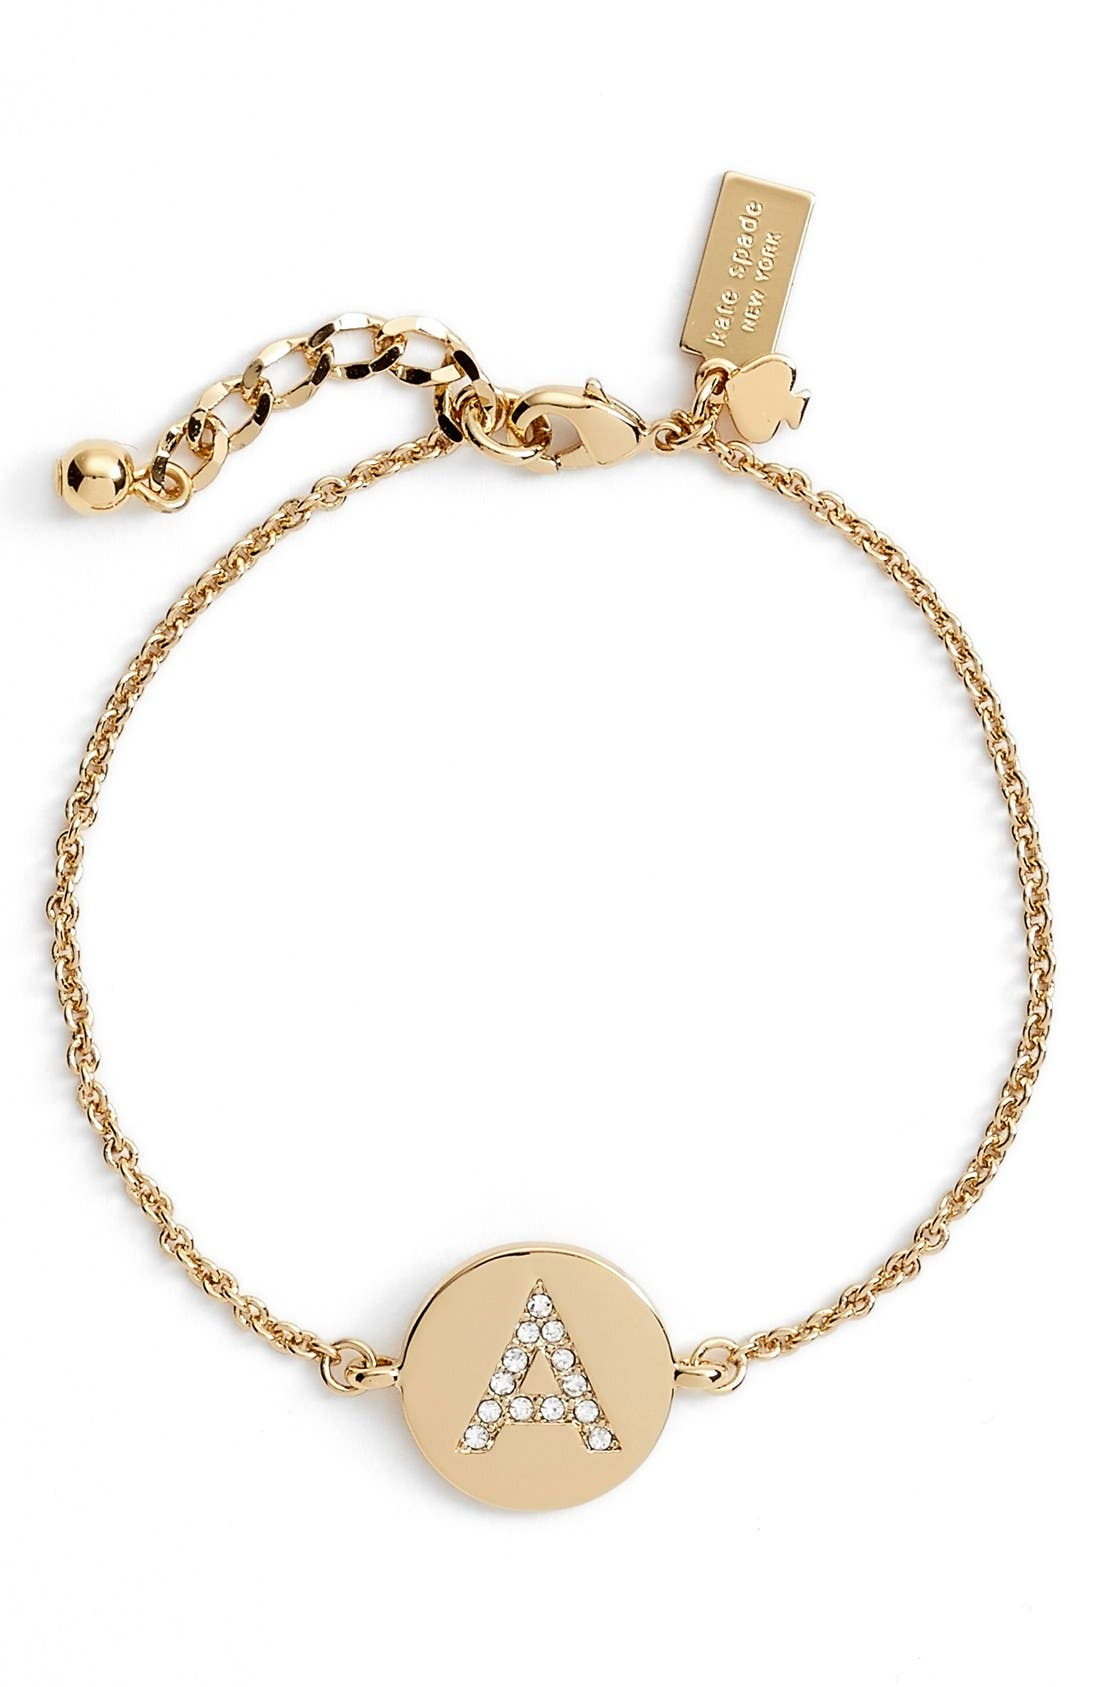 Alternate Image 1 Selected - kate spade new york 'north court' pavé initial charm bracelet